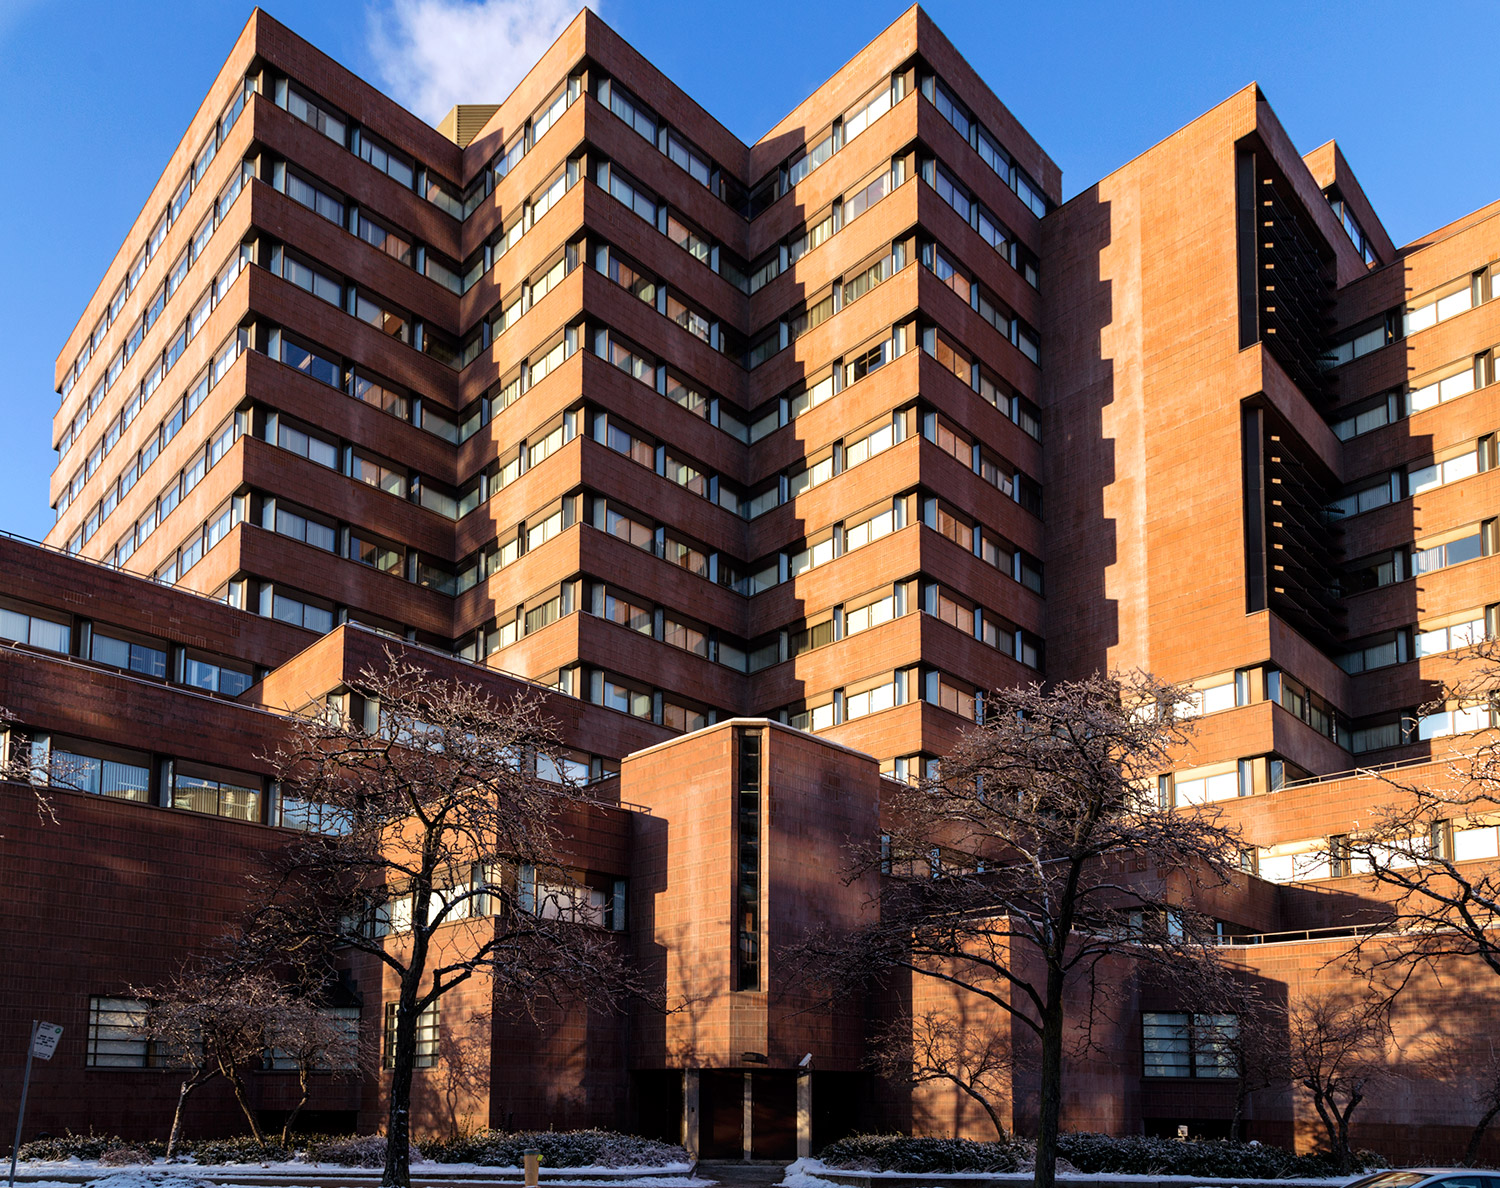 20150328. North York's late modernist Joseph Shepard Federal Bui